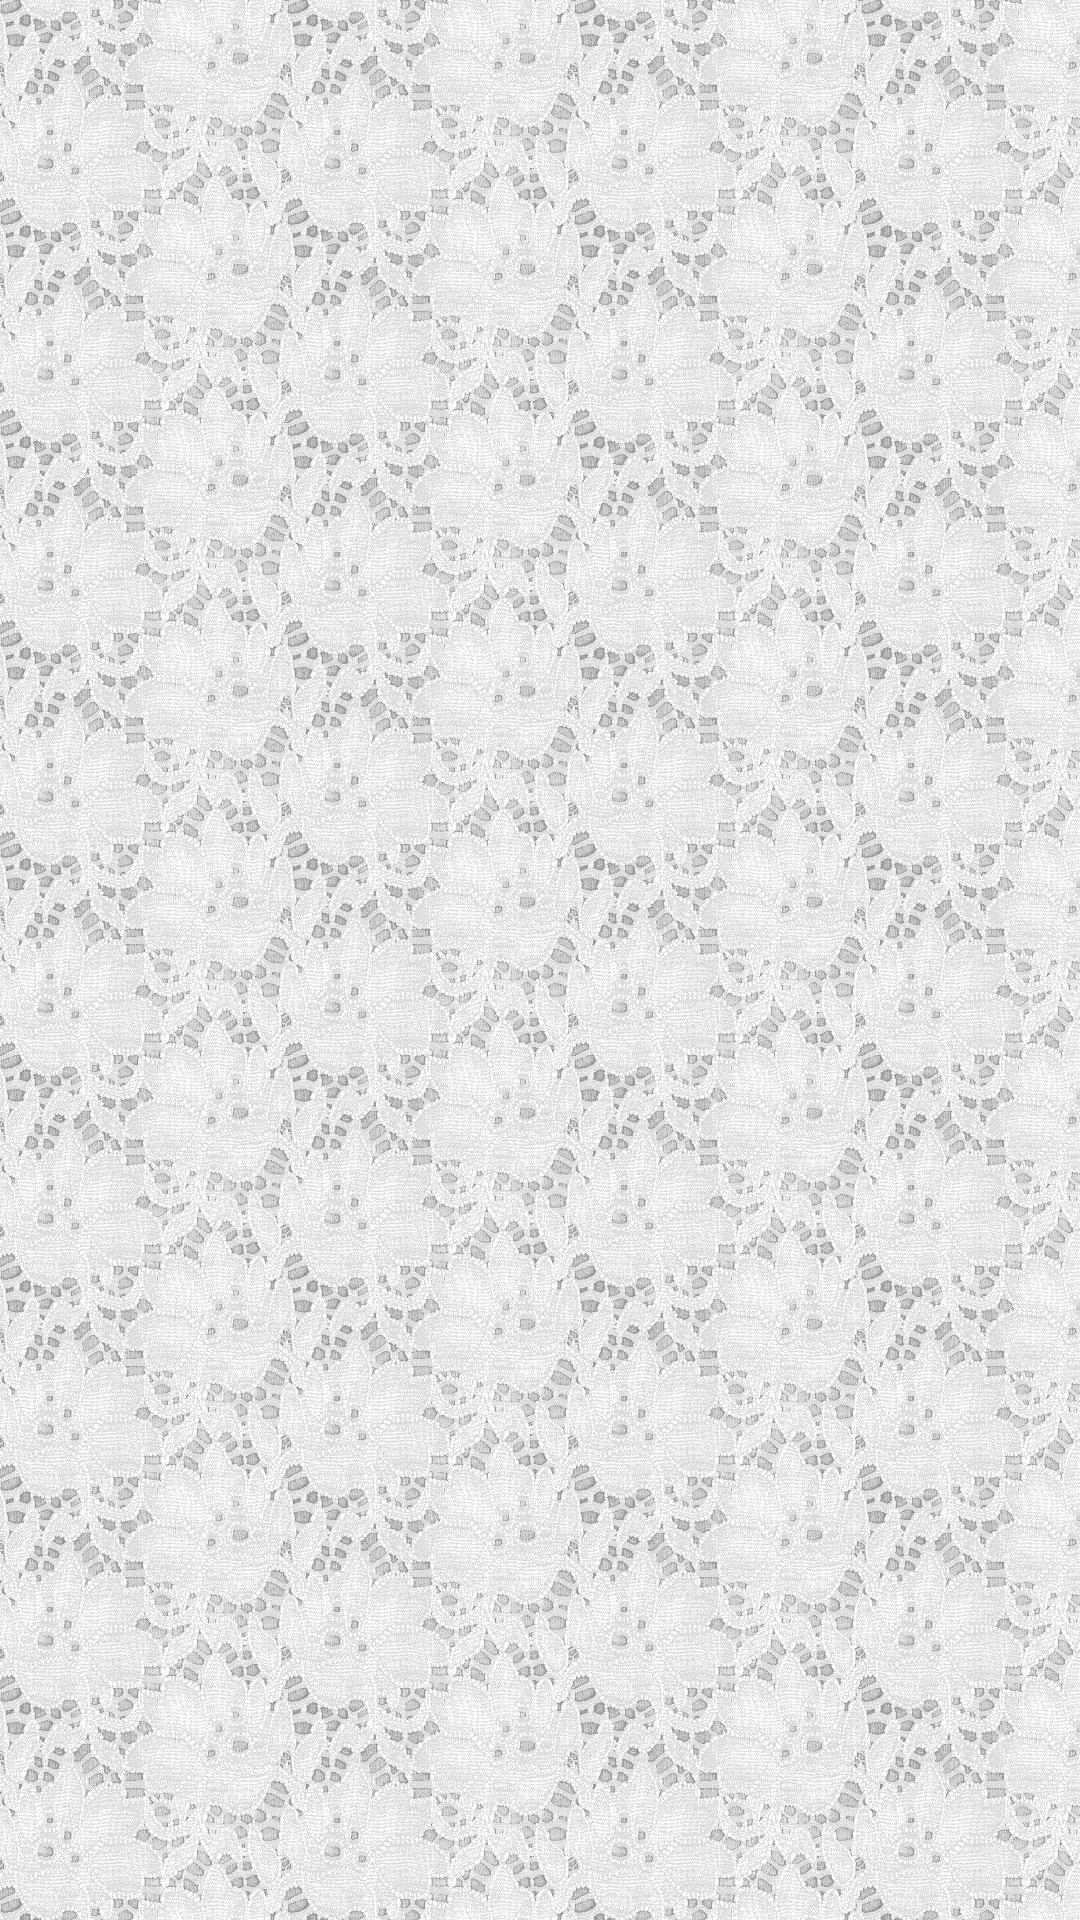 white lace tumblr backgrounds - photo #18